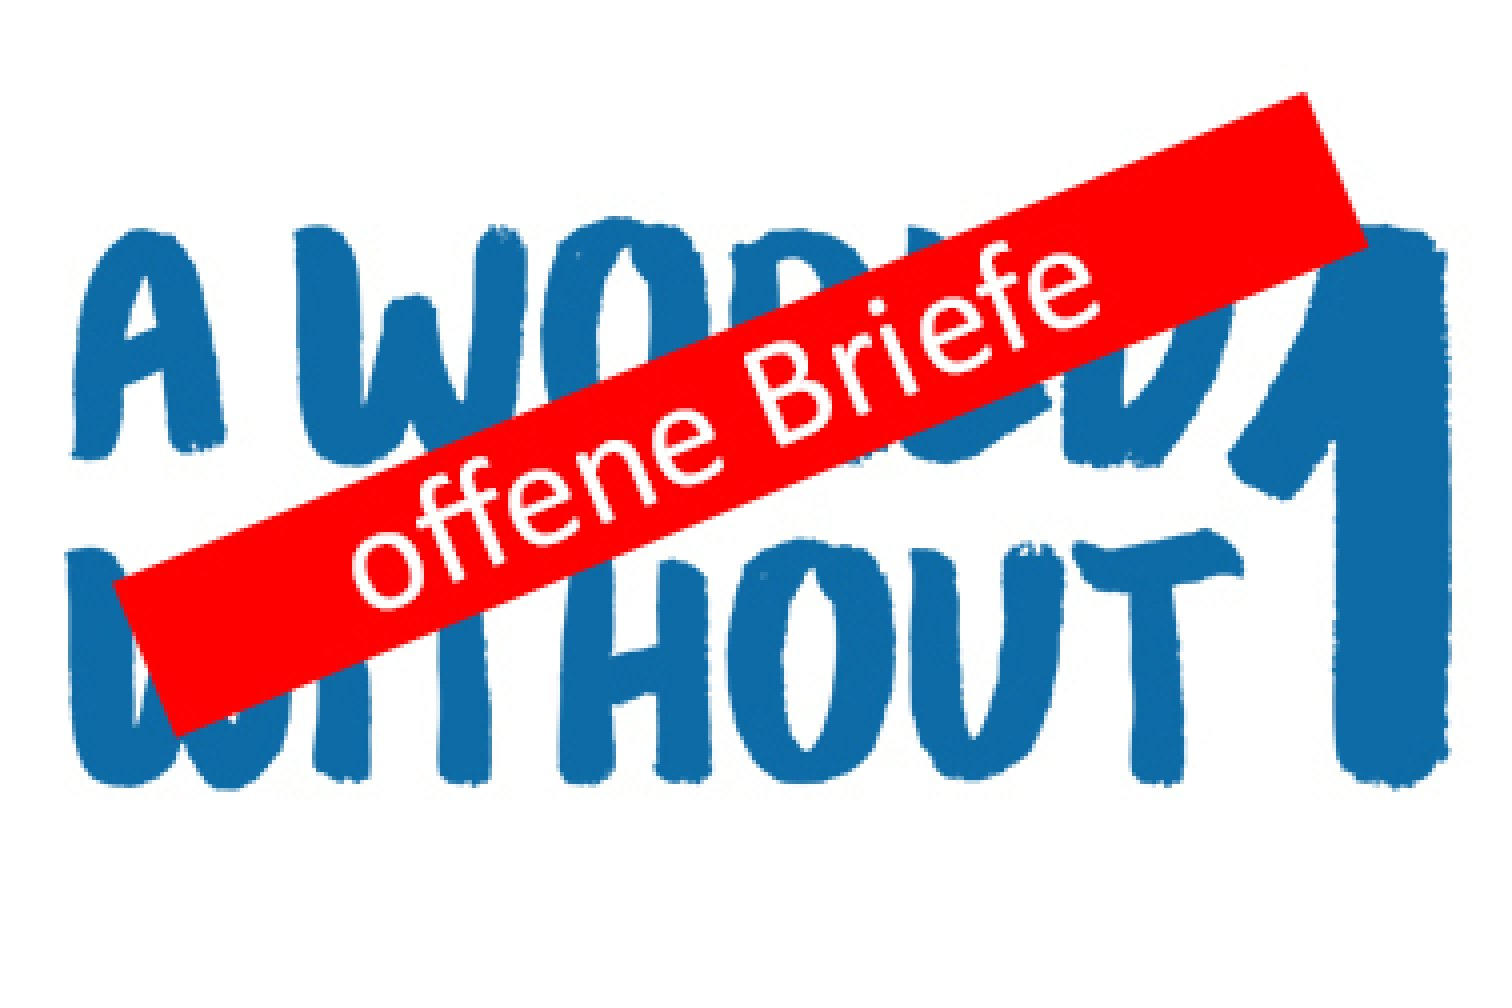 Offene Briefe zur Kampagne A World Without 1